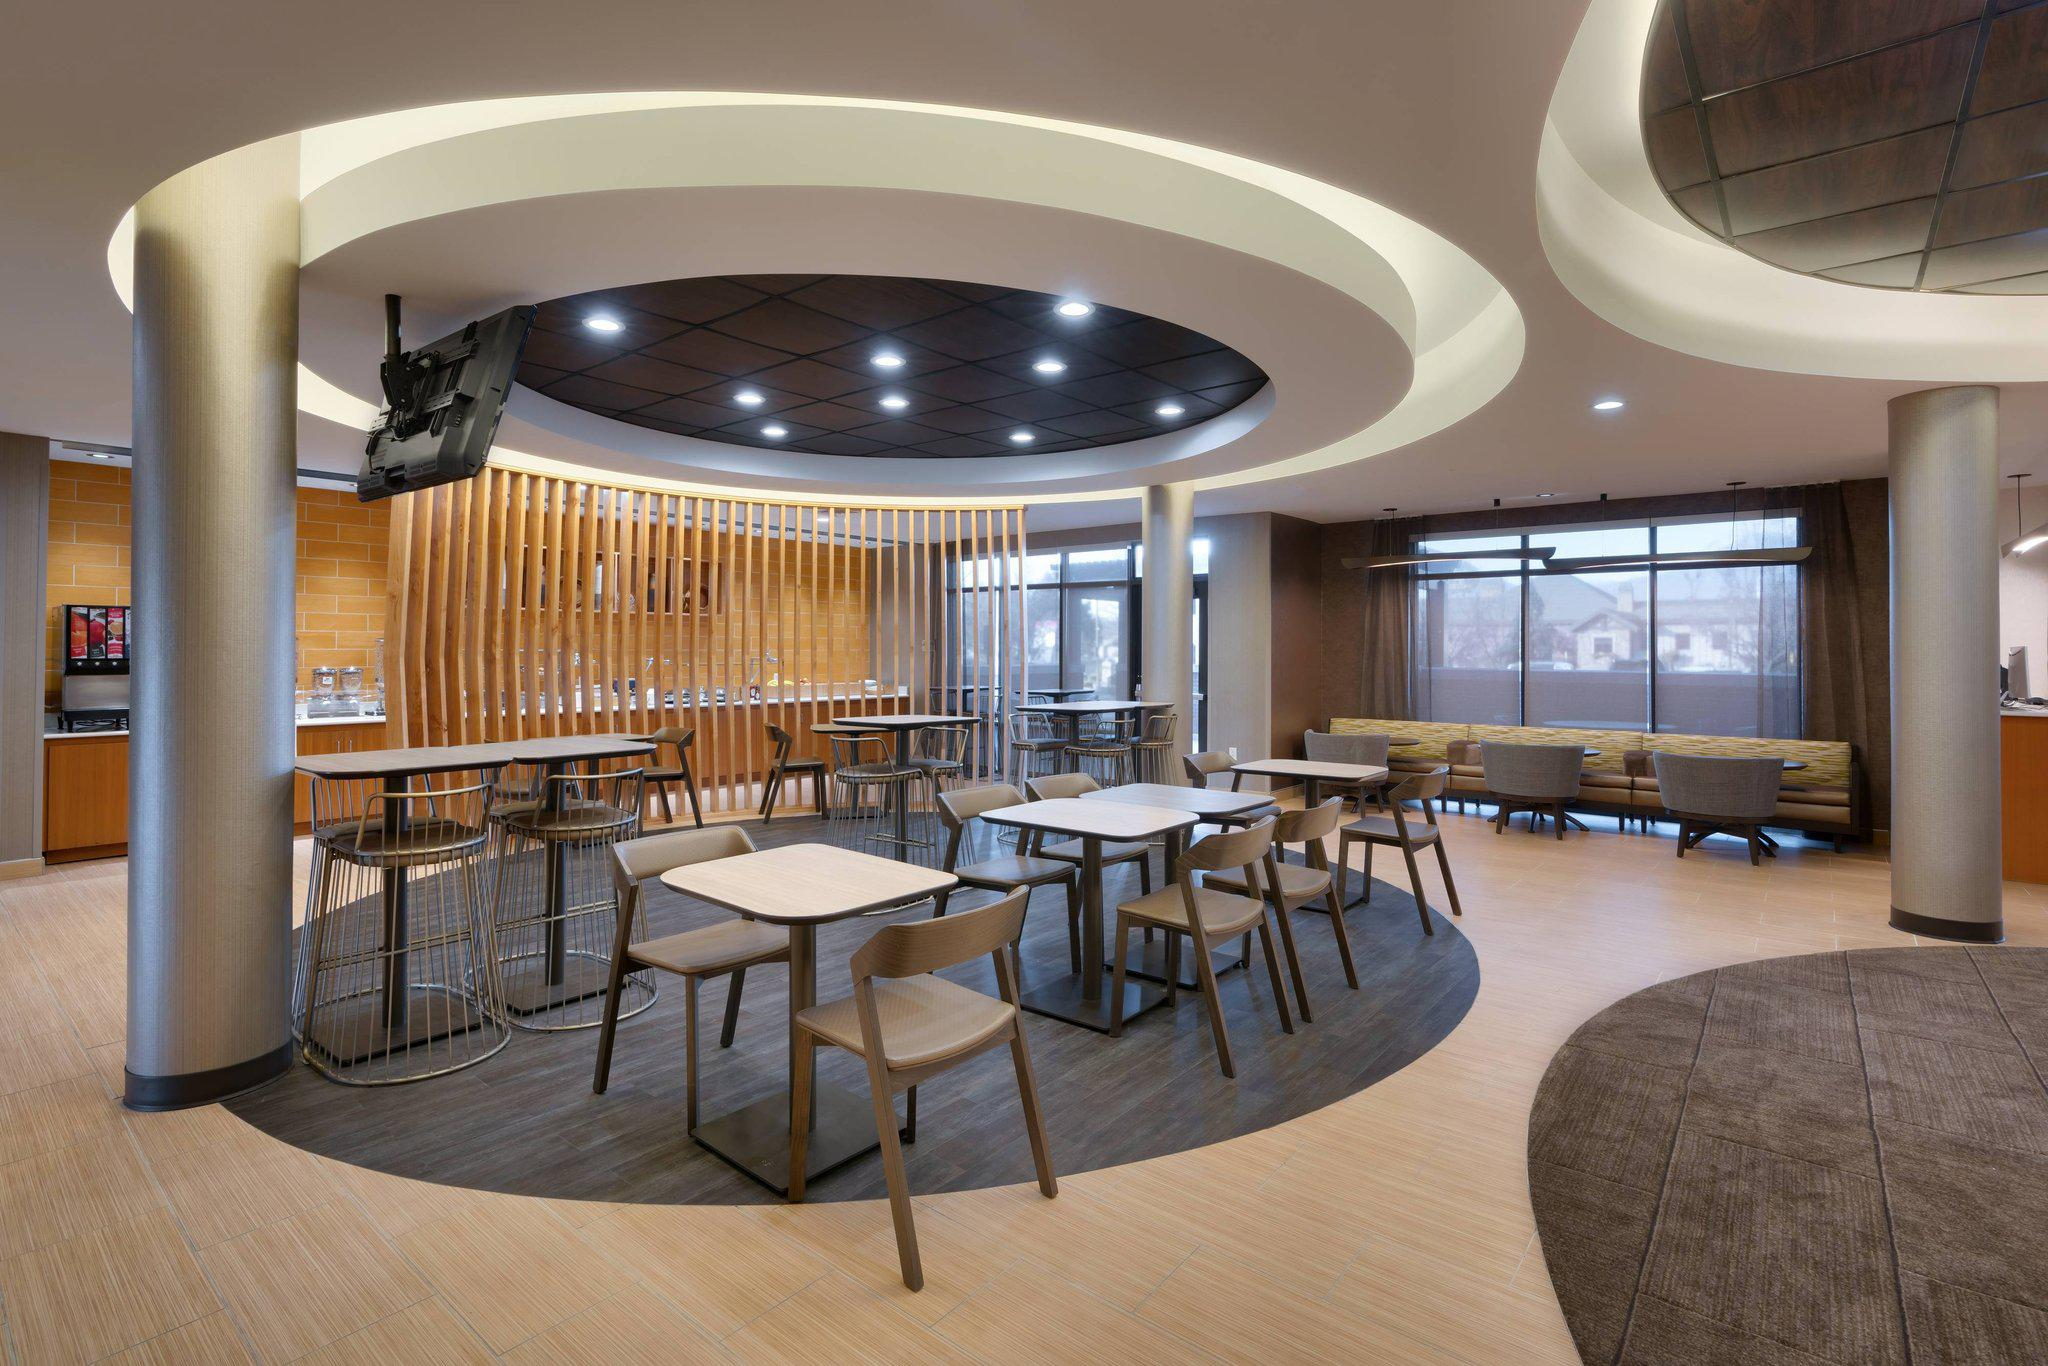 SpringHill Suites by Marriott Provo